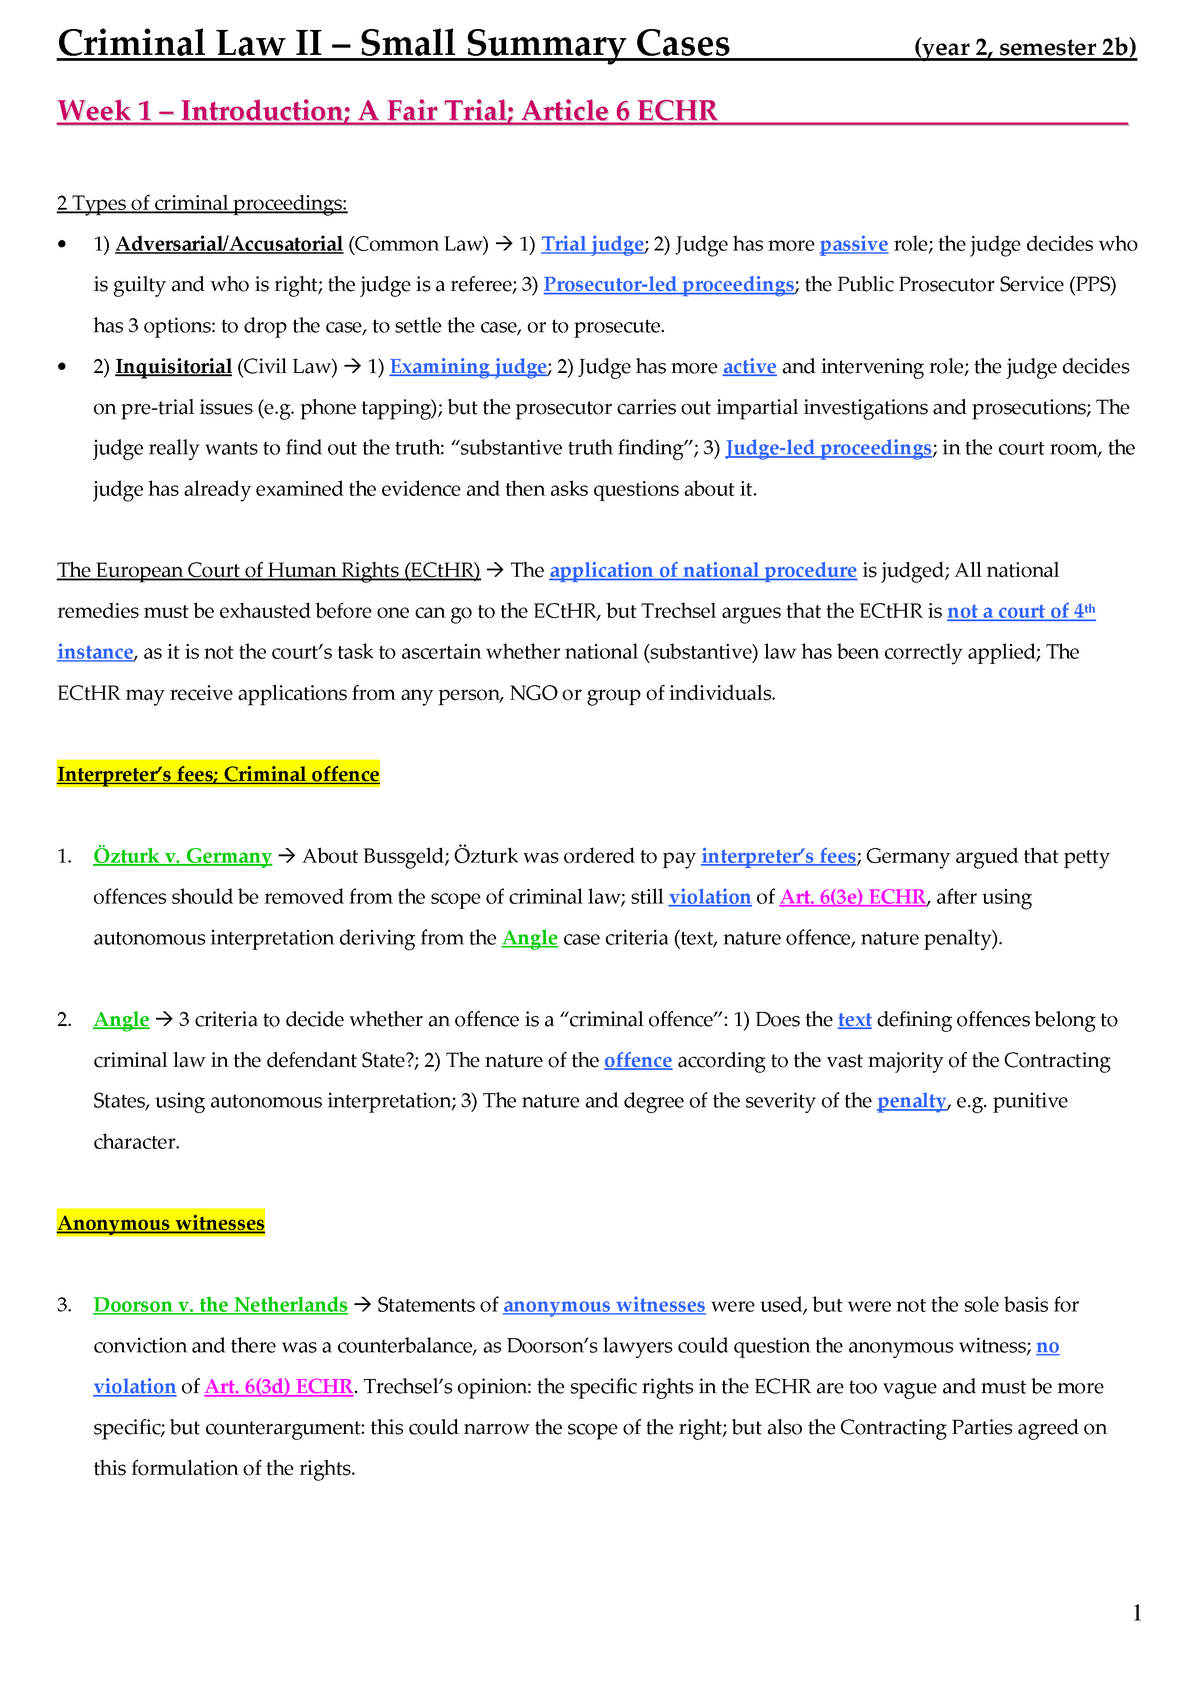 Brief summary of the judgments (English)  - RGBSR00107: Strafrecht 2